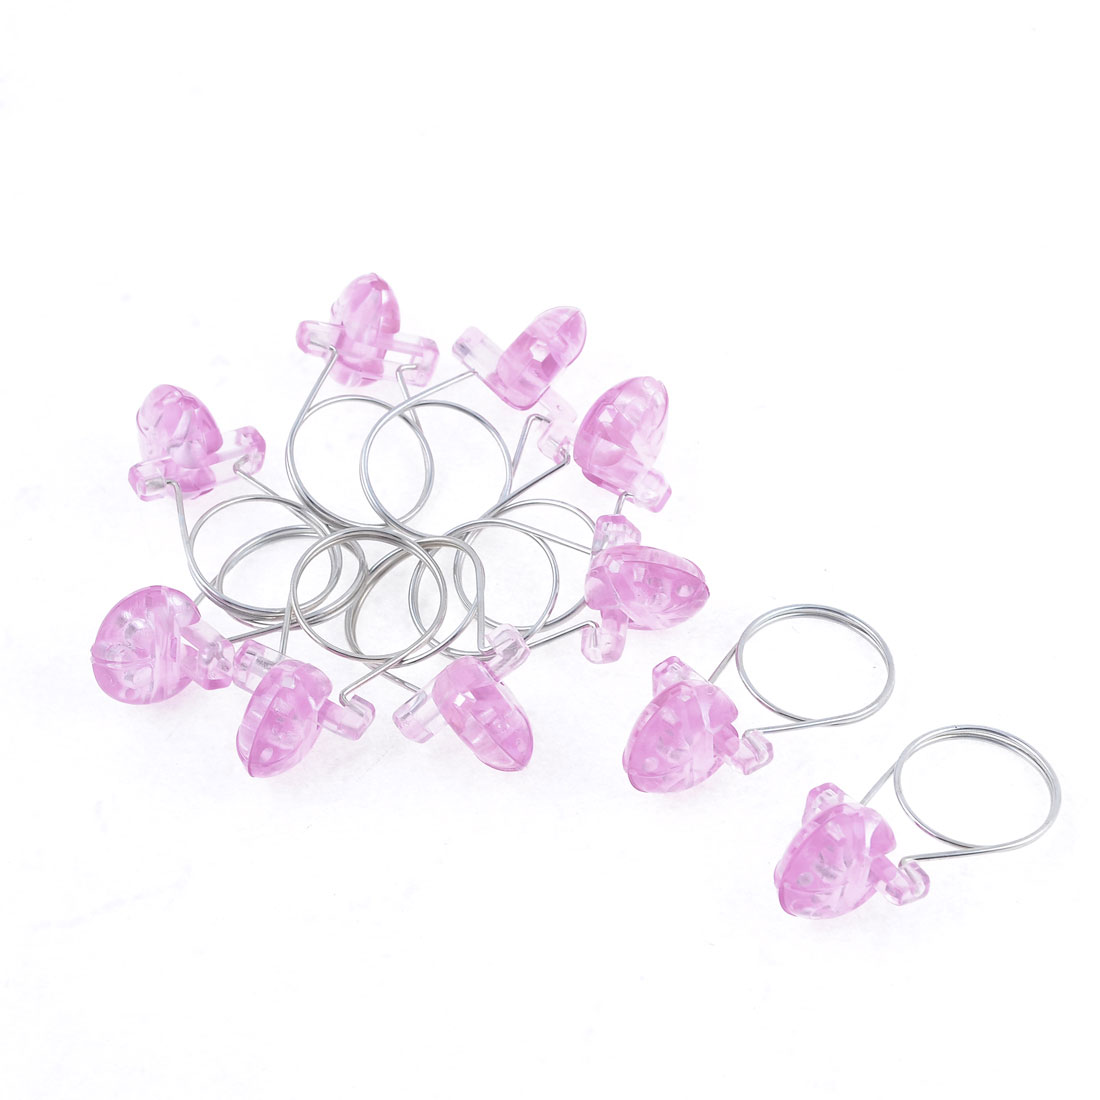 Clear Pink Plastic Toothed Curtain Hanging Ring Clips Rod Mounting Clamps 10 Pcs